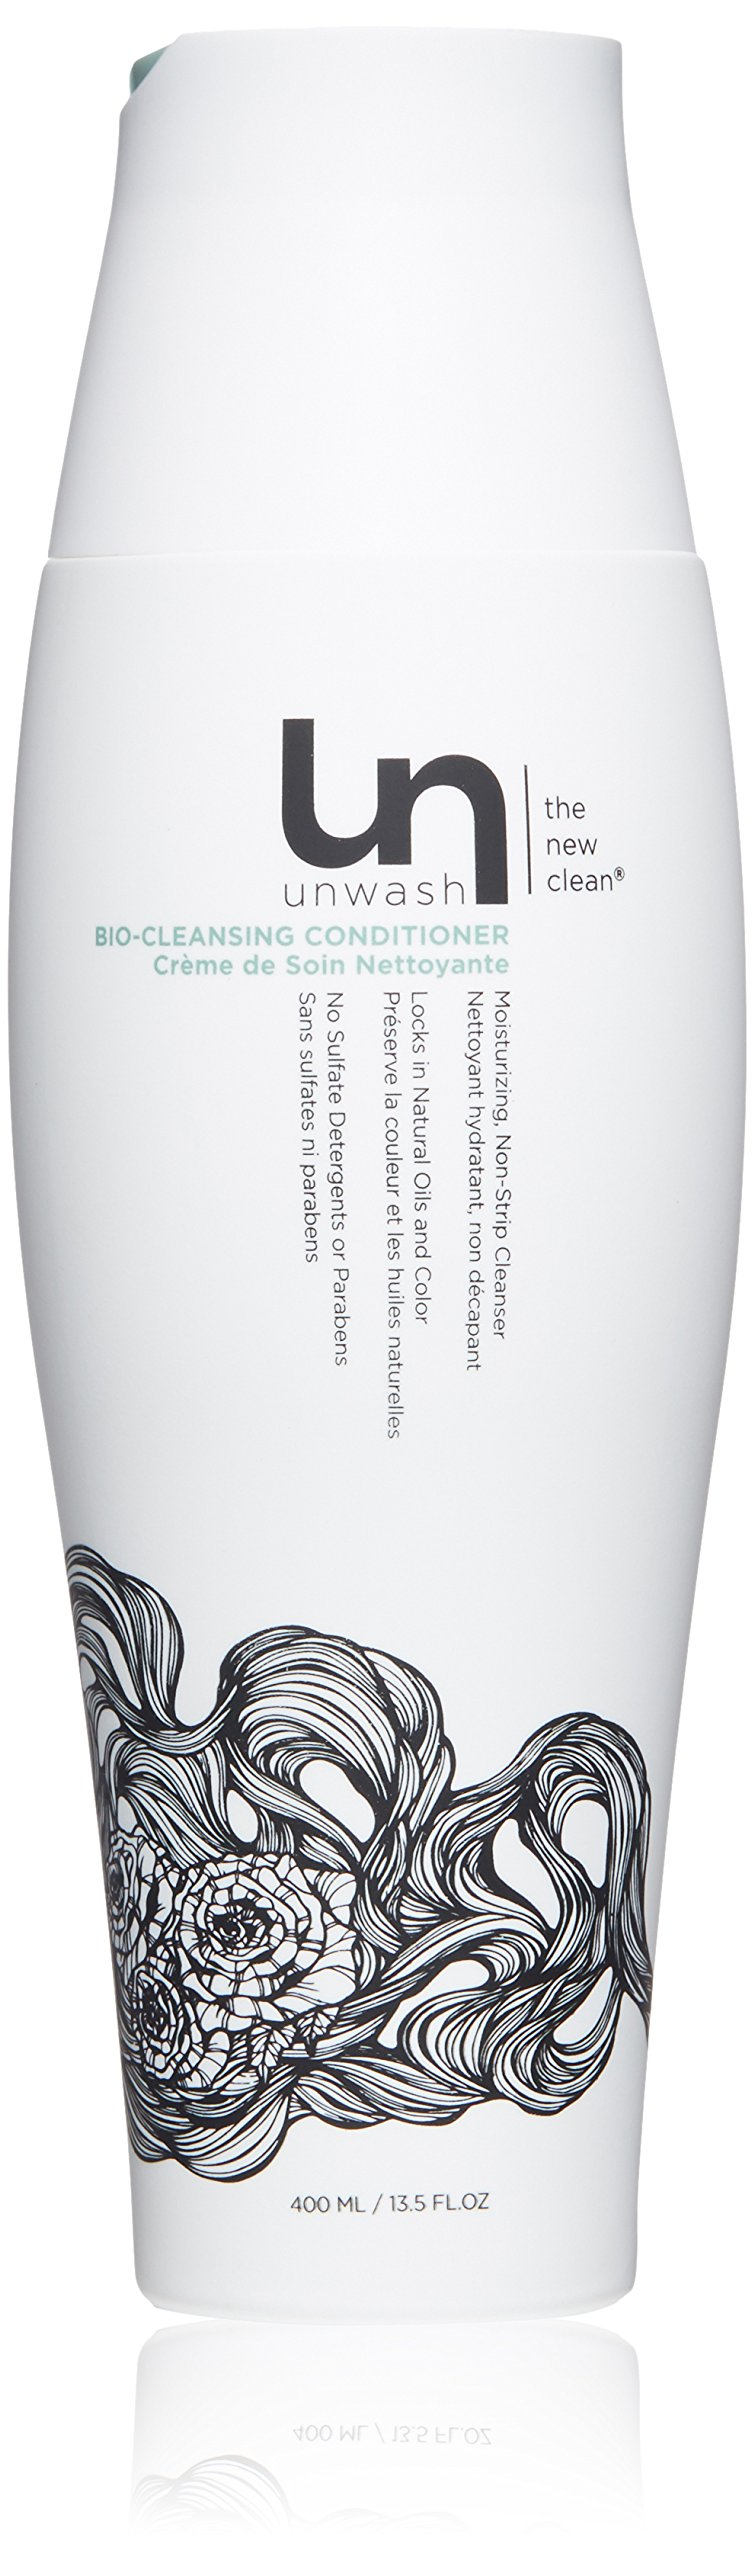 Unwash Bio-Cleansing Conditioner Hair Cleanser: Co-Wash Cleansing & Conditioning